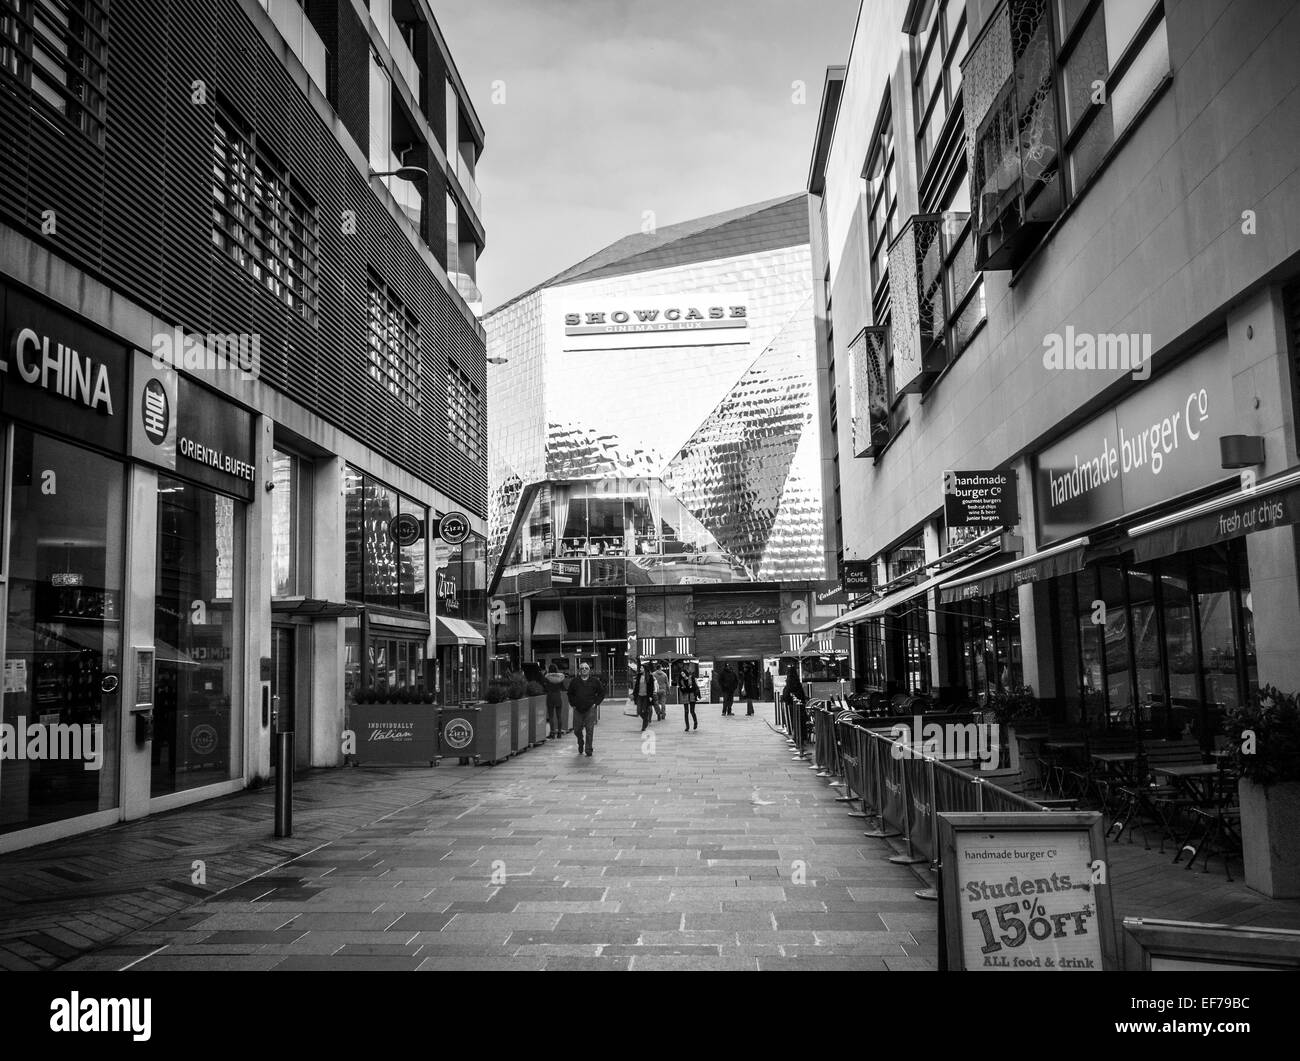 ST PAULS SQUARE, HIGHCROSS SHOPPING CENTRE, LEICESTER, ENGLAND.  General view of Showcase Cinema taken January 2015 - Stock Image